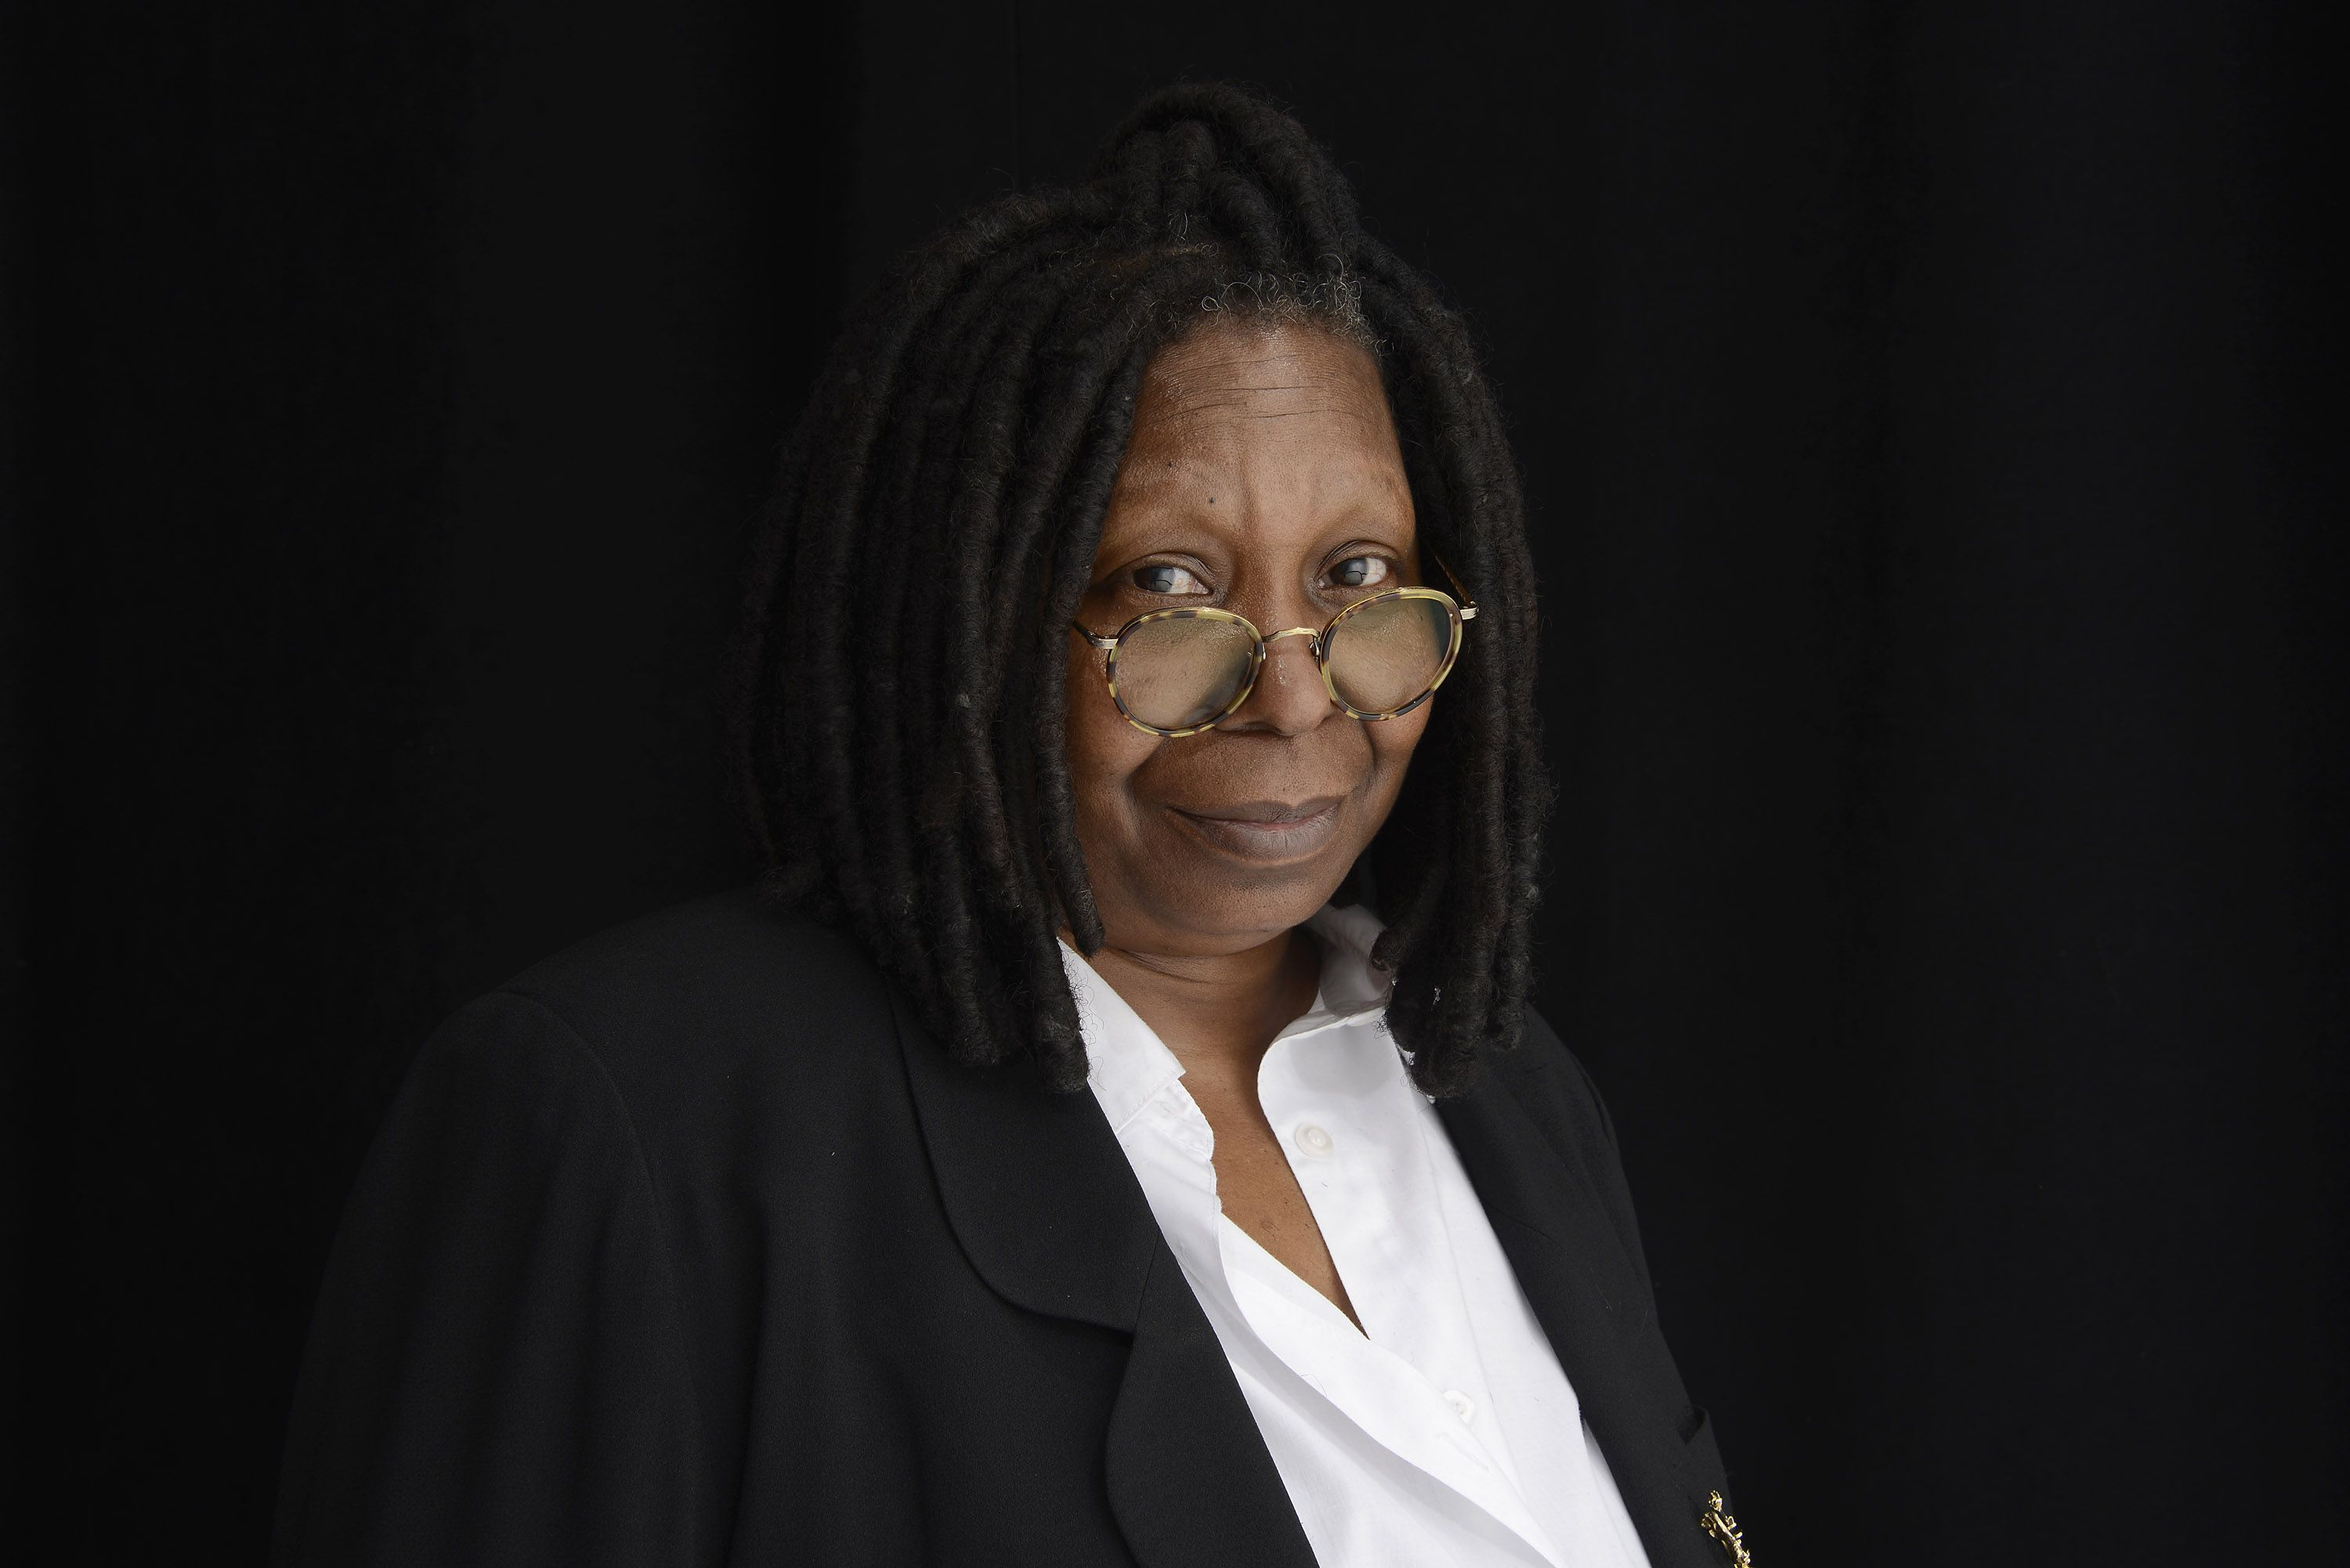 Who is whoopi goldberg dating now